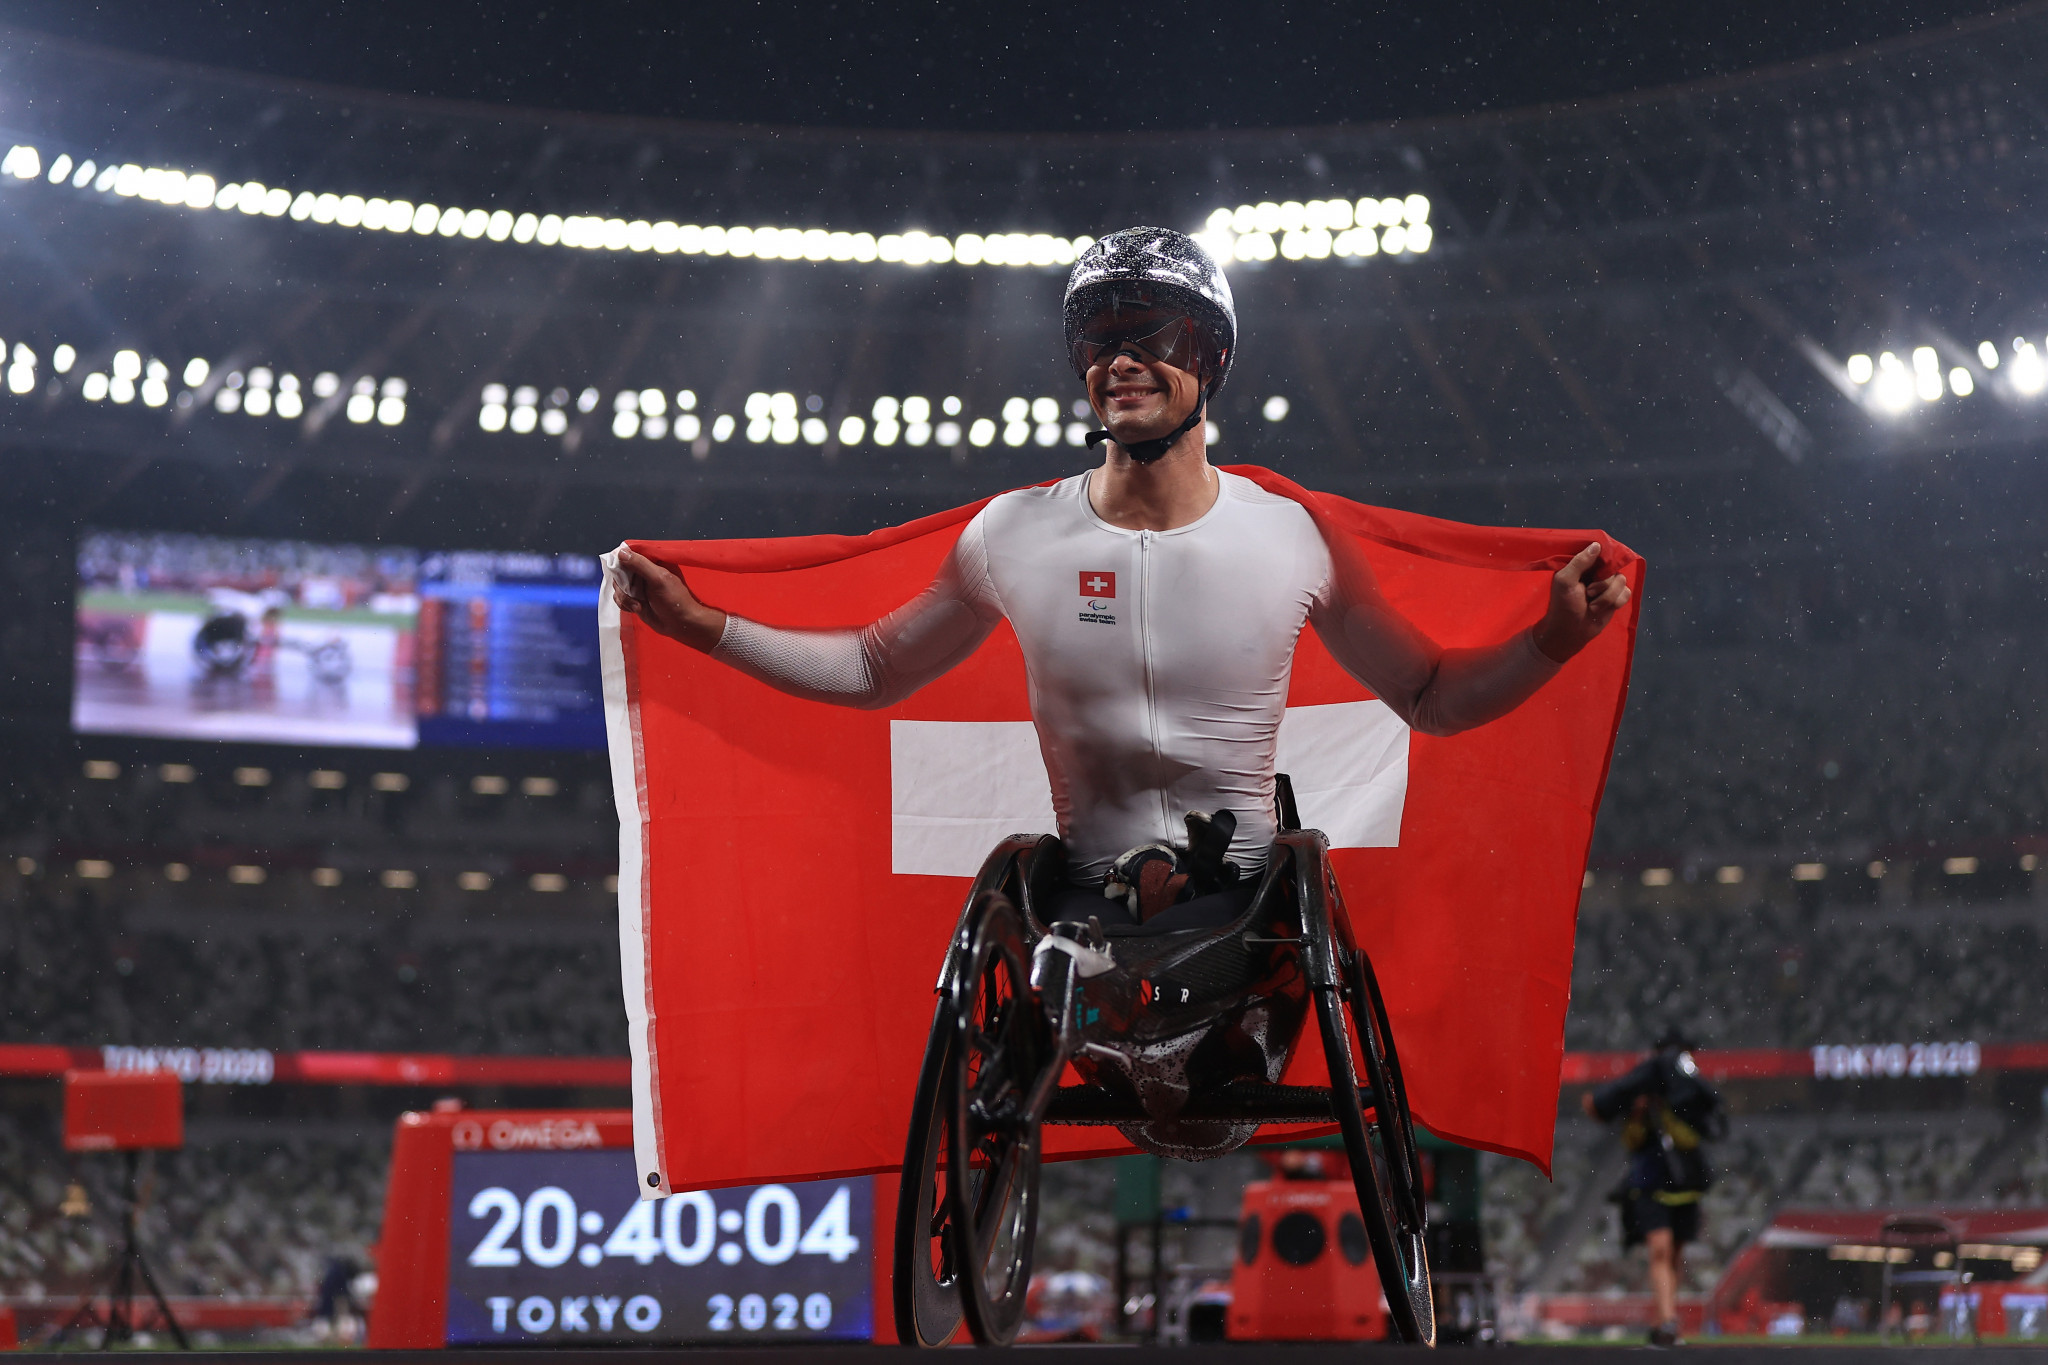 Switzerland enjoy magical night on the track as Hug completes Tokyo 2020 hat-trick